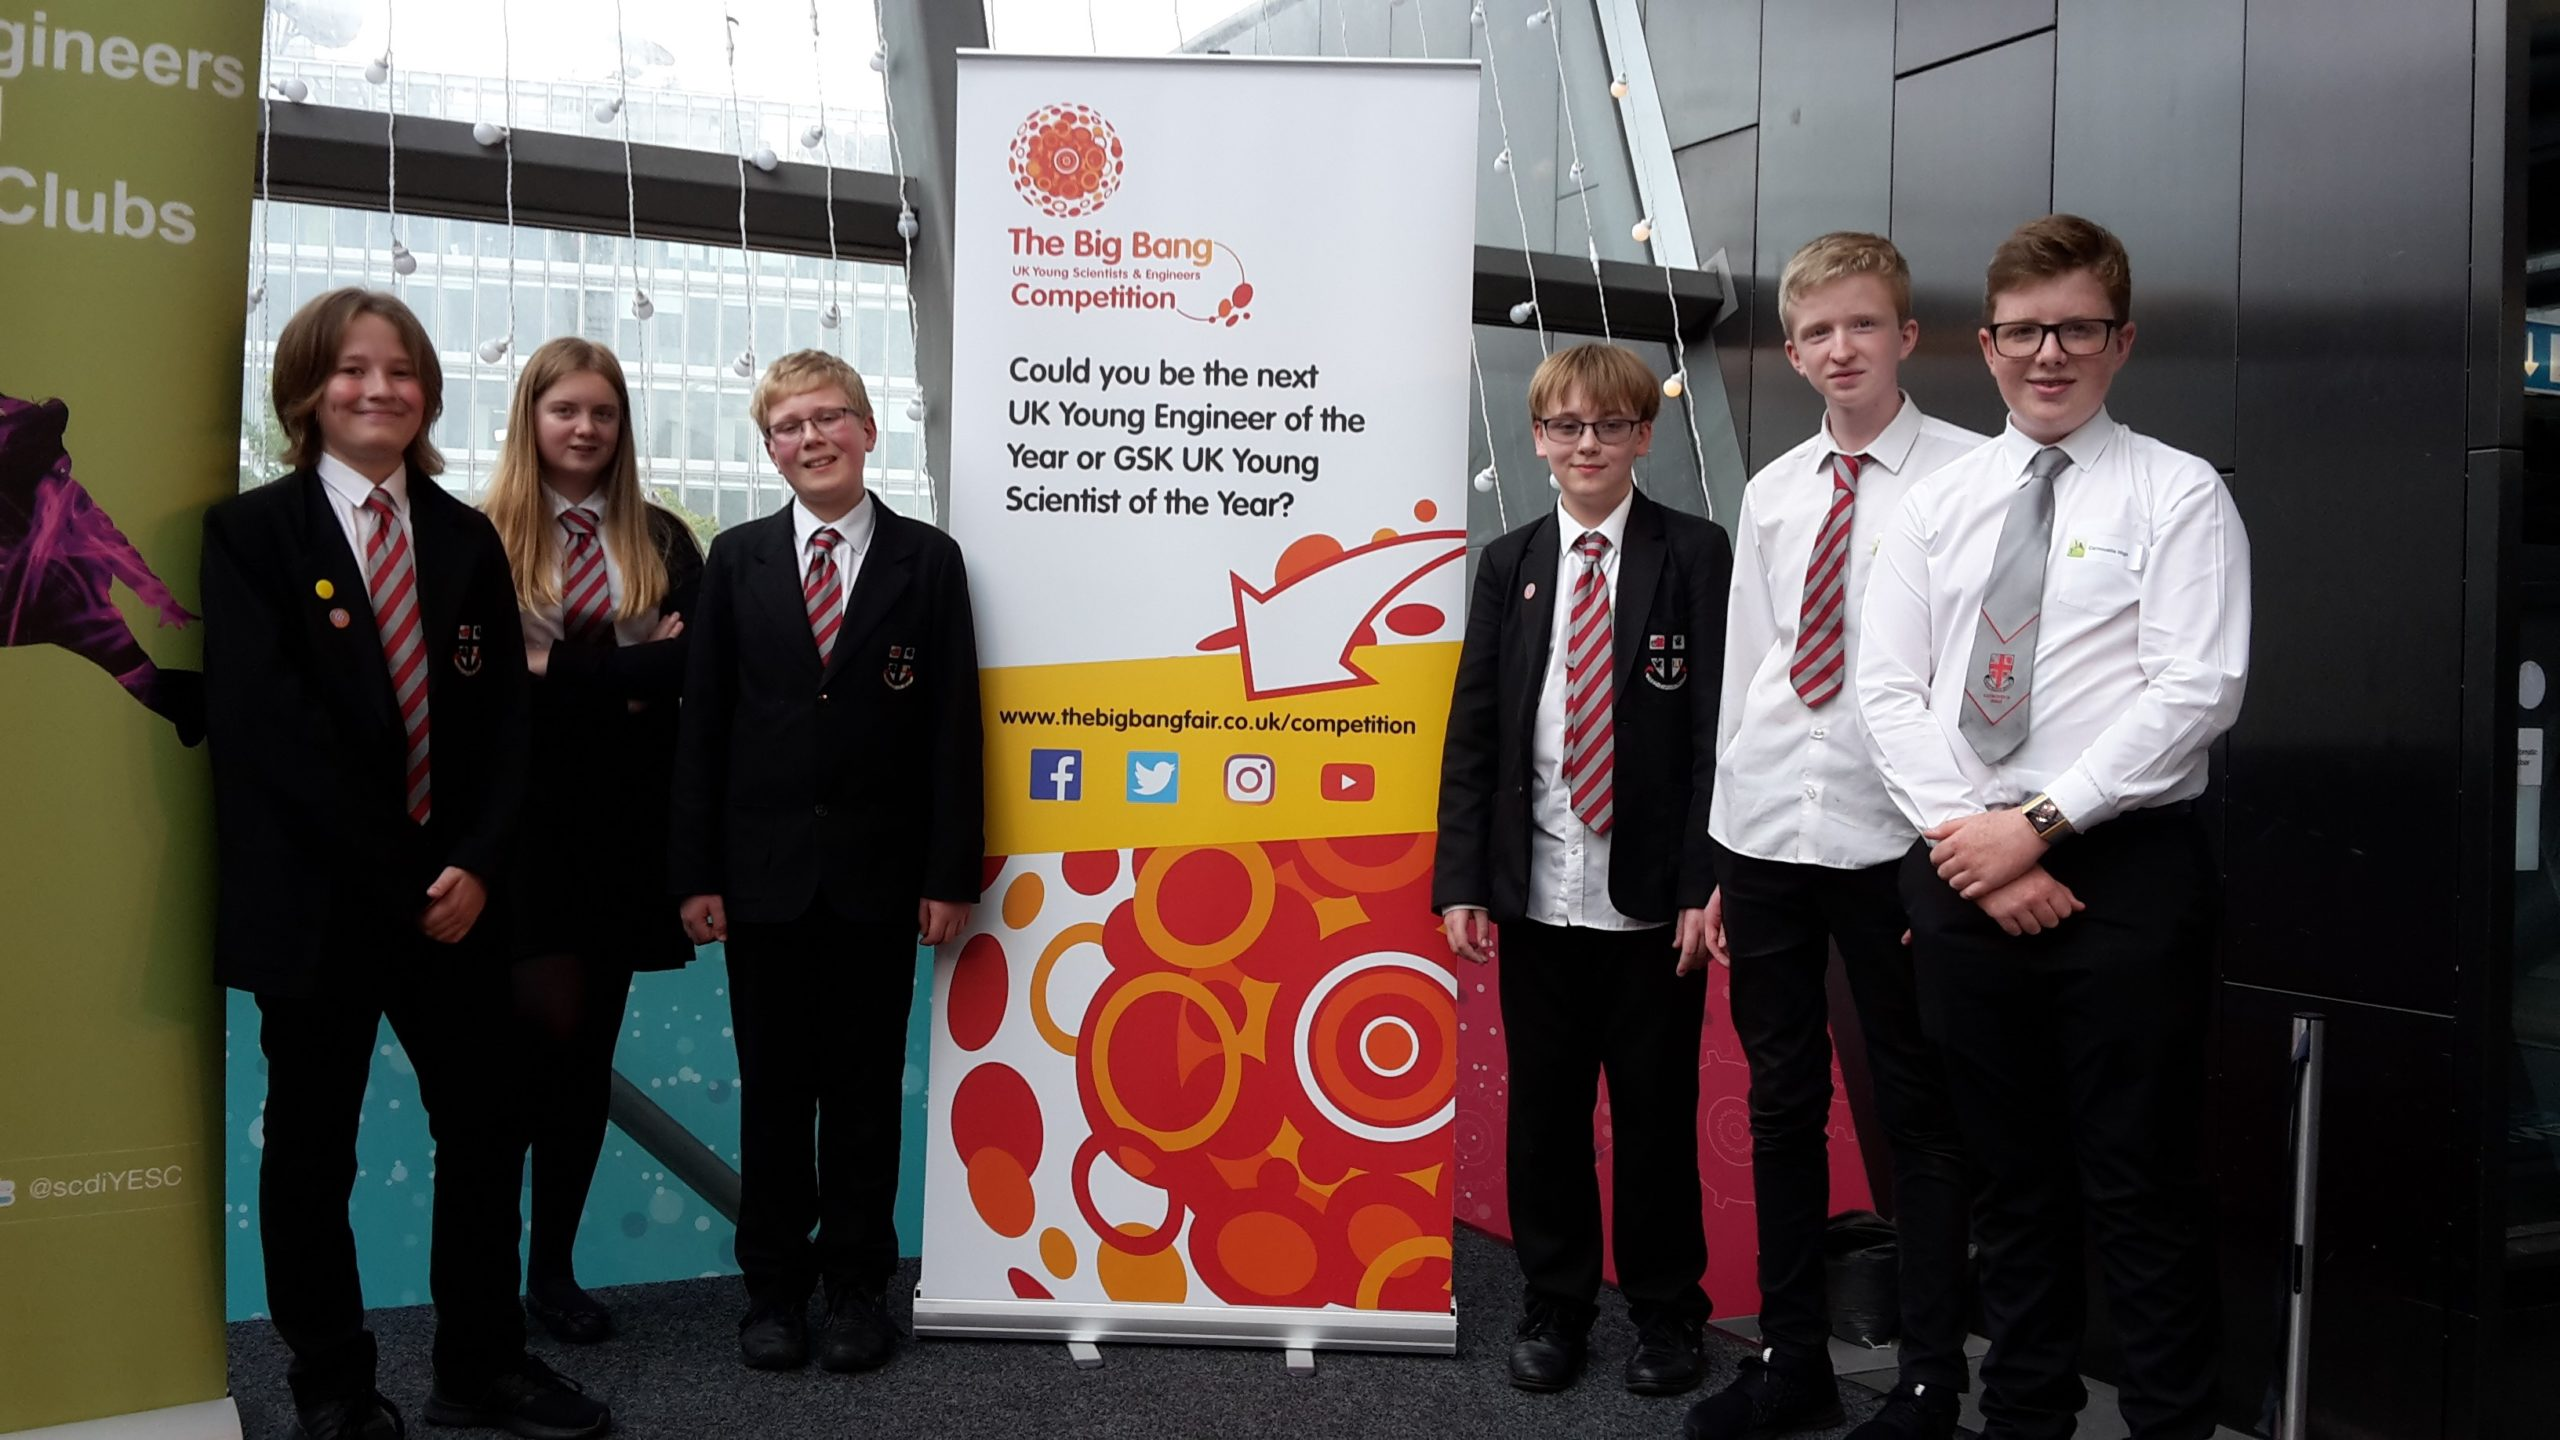 Carnoustie High School pupils Callum Ireland, Chrystalla Inglis, Matthew Booth, Cameron Stuart, Josh Hirst and Christopher Parke.